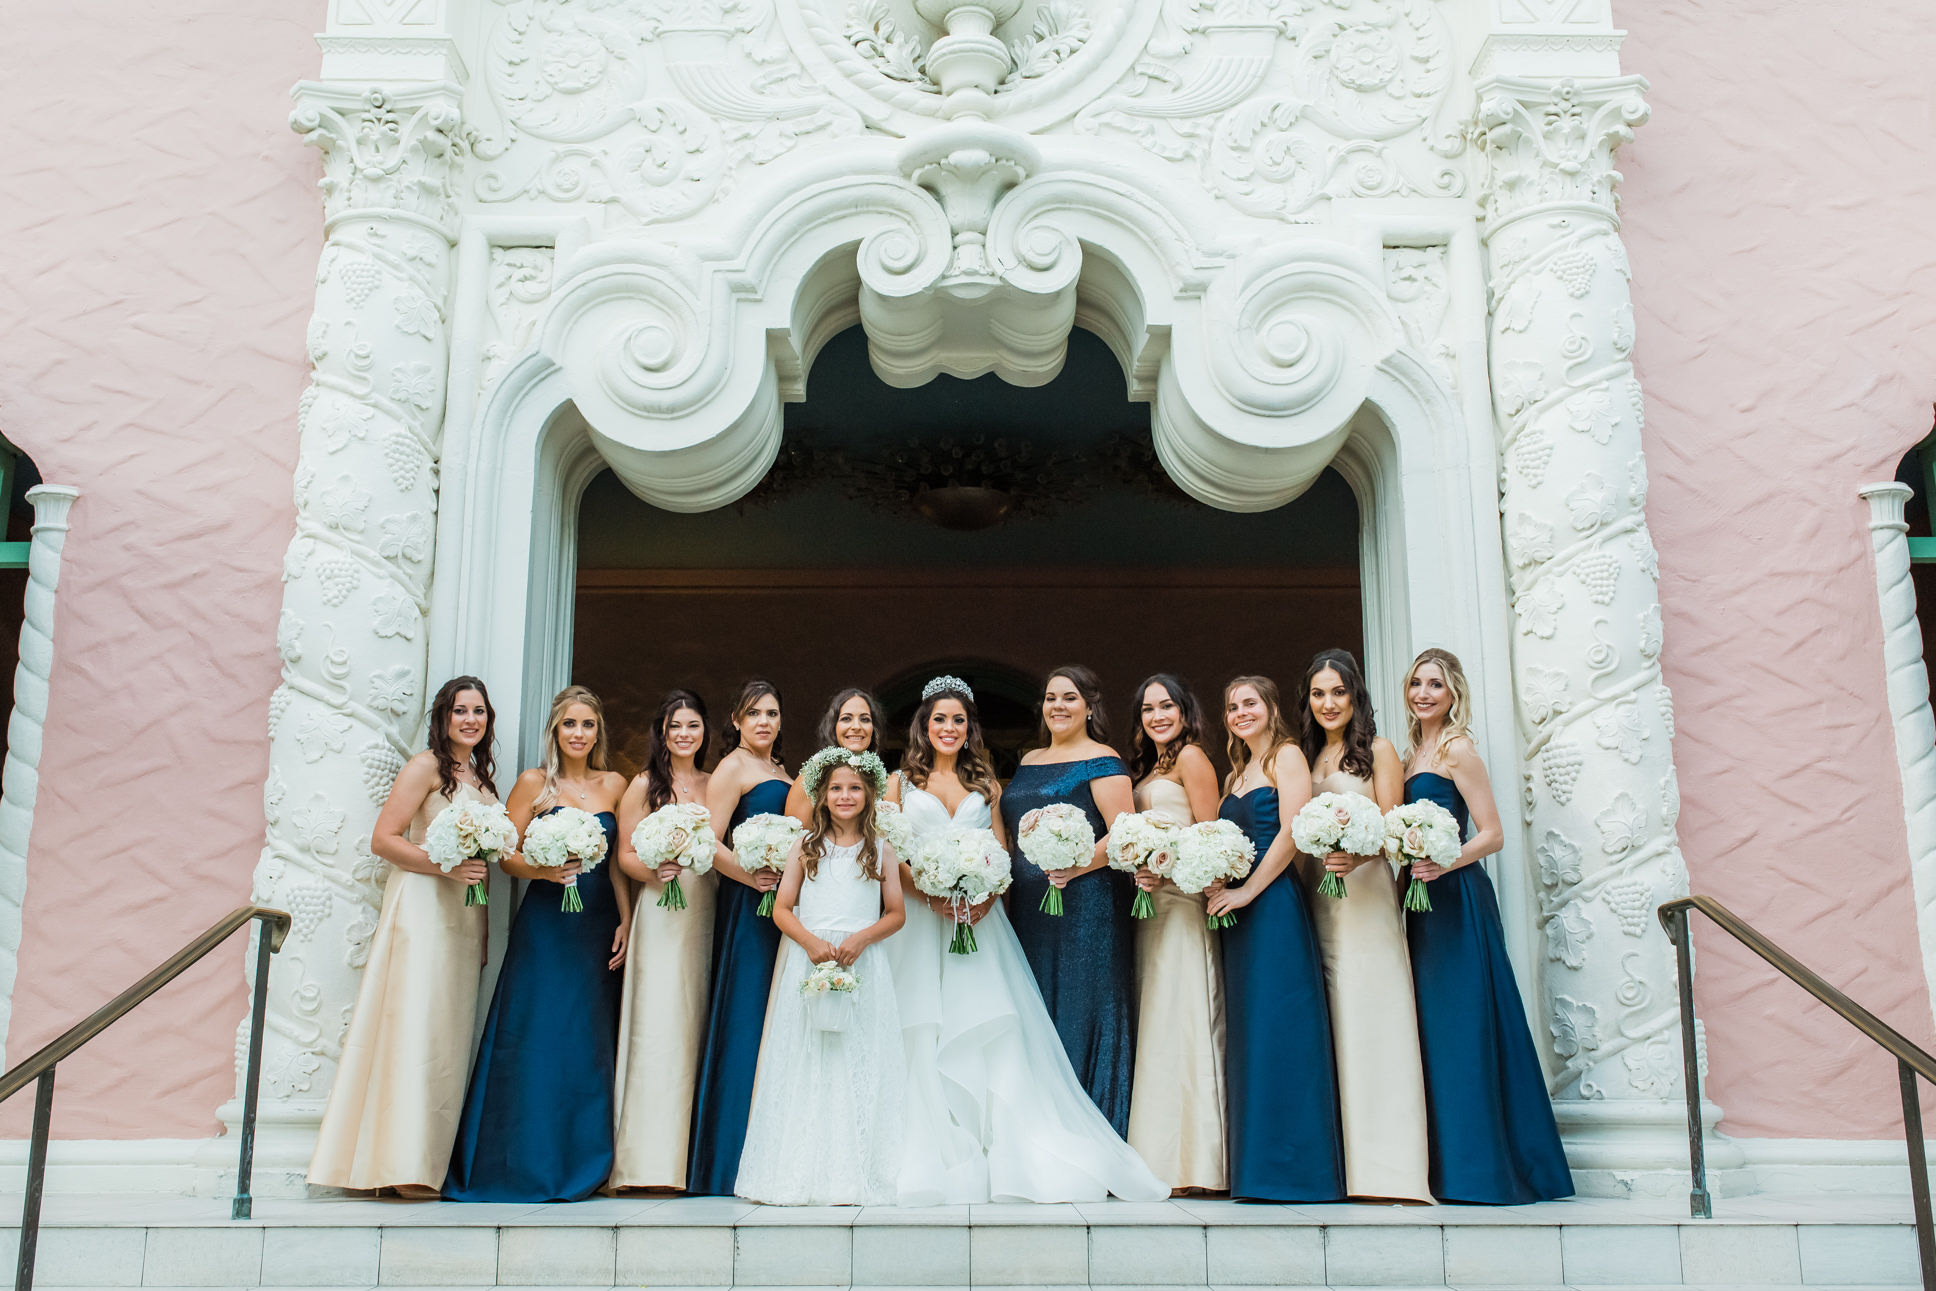 St. Pete Bride in Hayley Paige Wedding Dress, Bridesmaids in Mix and Match Navy Blue and Gold Dresses, Flower Girl in White Dress Bridal Party Portrait